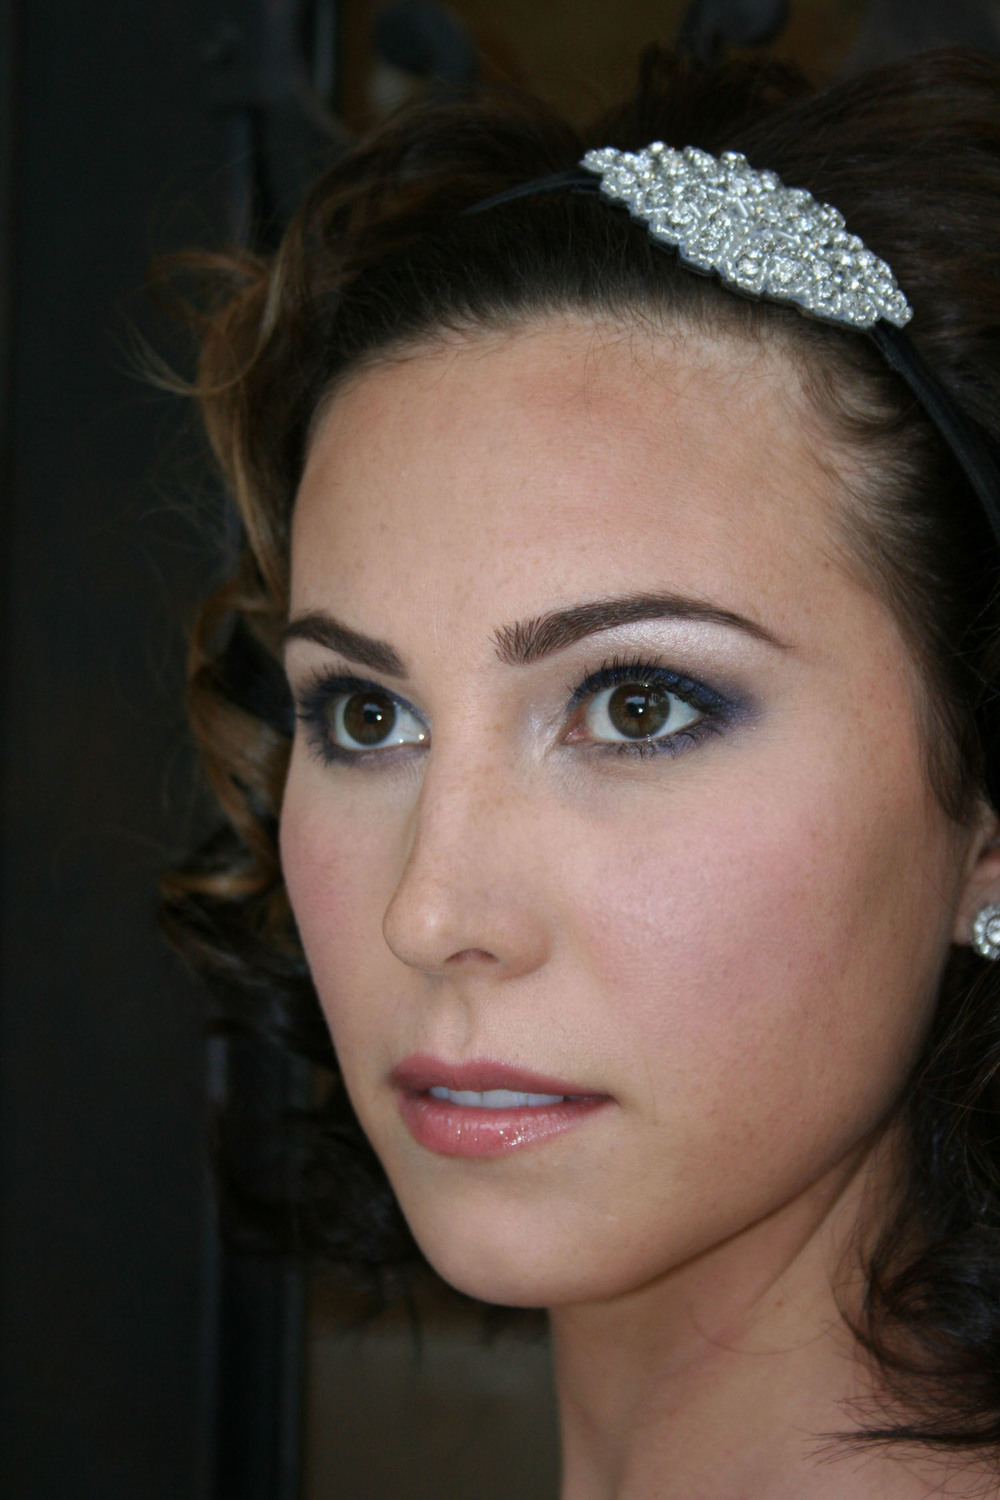 young-women-party-makeup-smoky-navy-eye-freckles-rhinstone-headband-dark-brown-hair.jpg